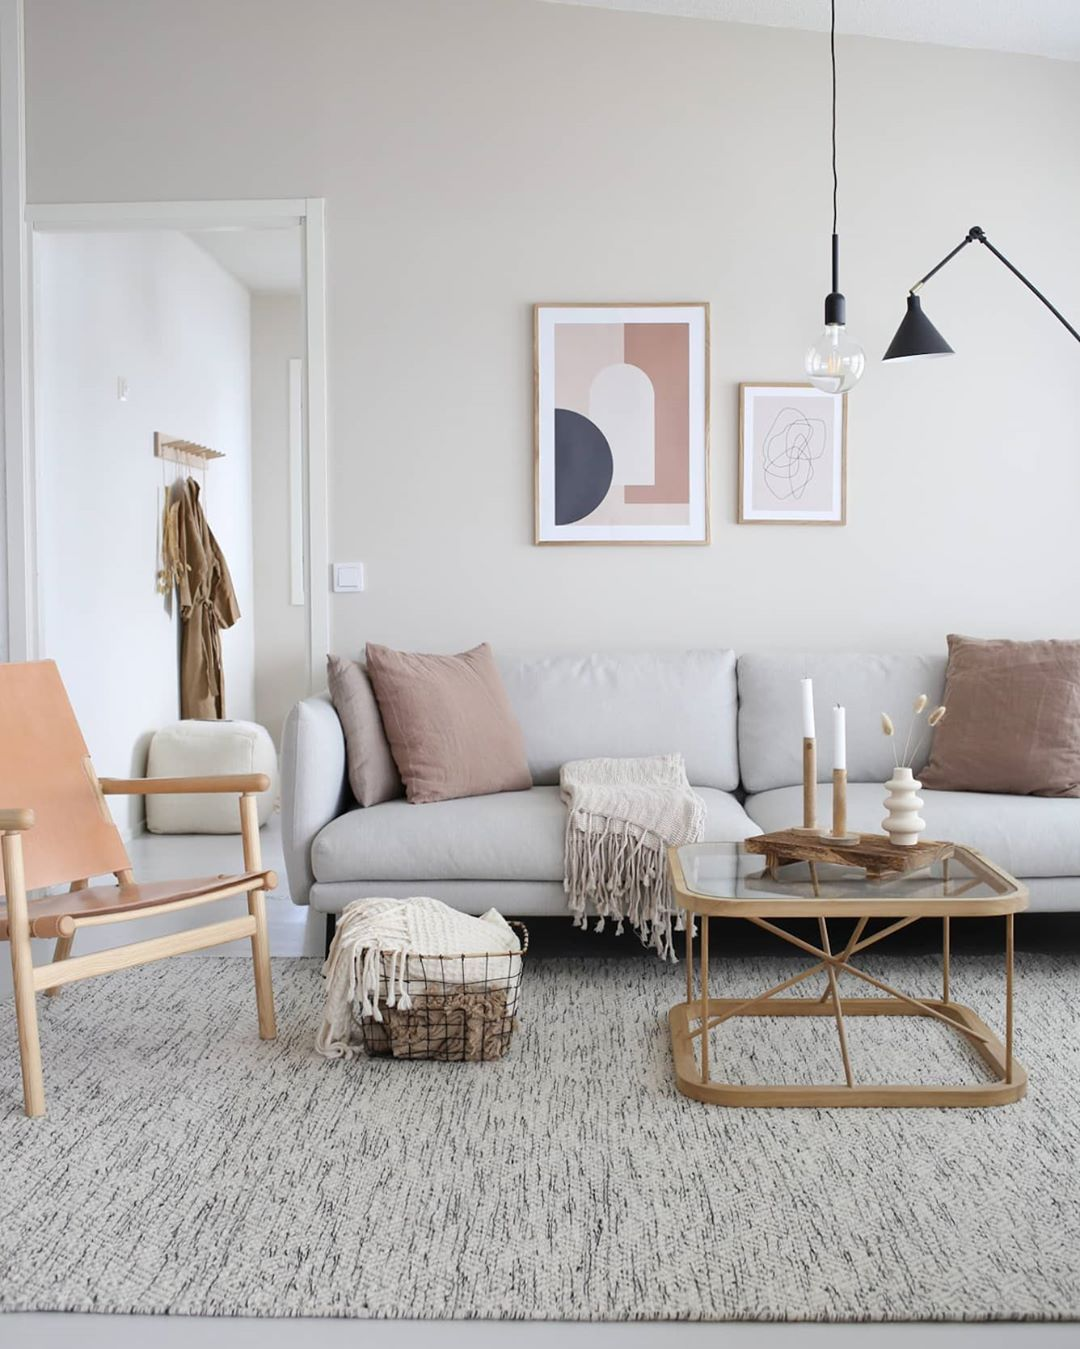 You Before Reading Confused About What Scandinavian Design Is In 2020 Scandanavian Interiors Living Room Interior Design Principles Scandinavian Interior Living Room